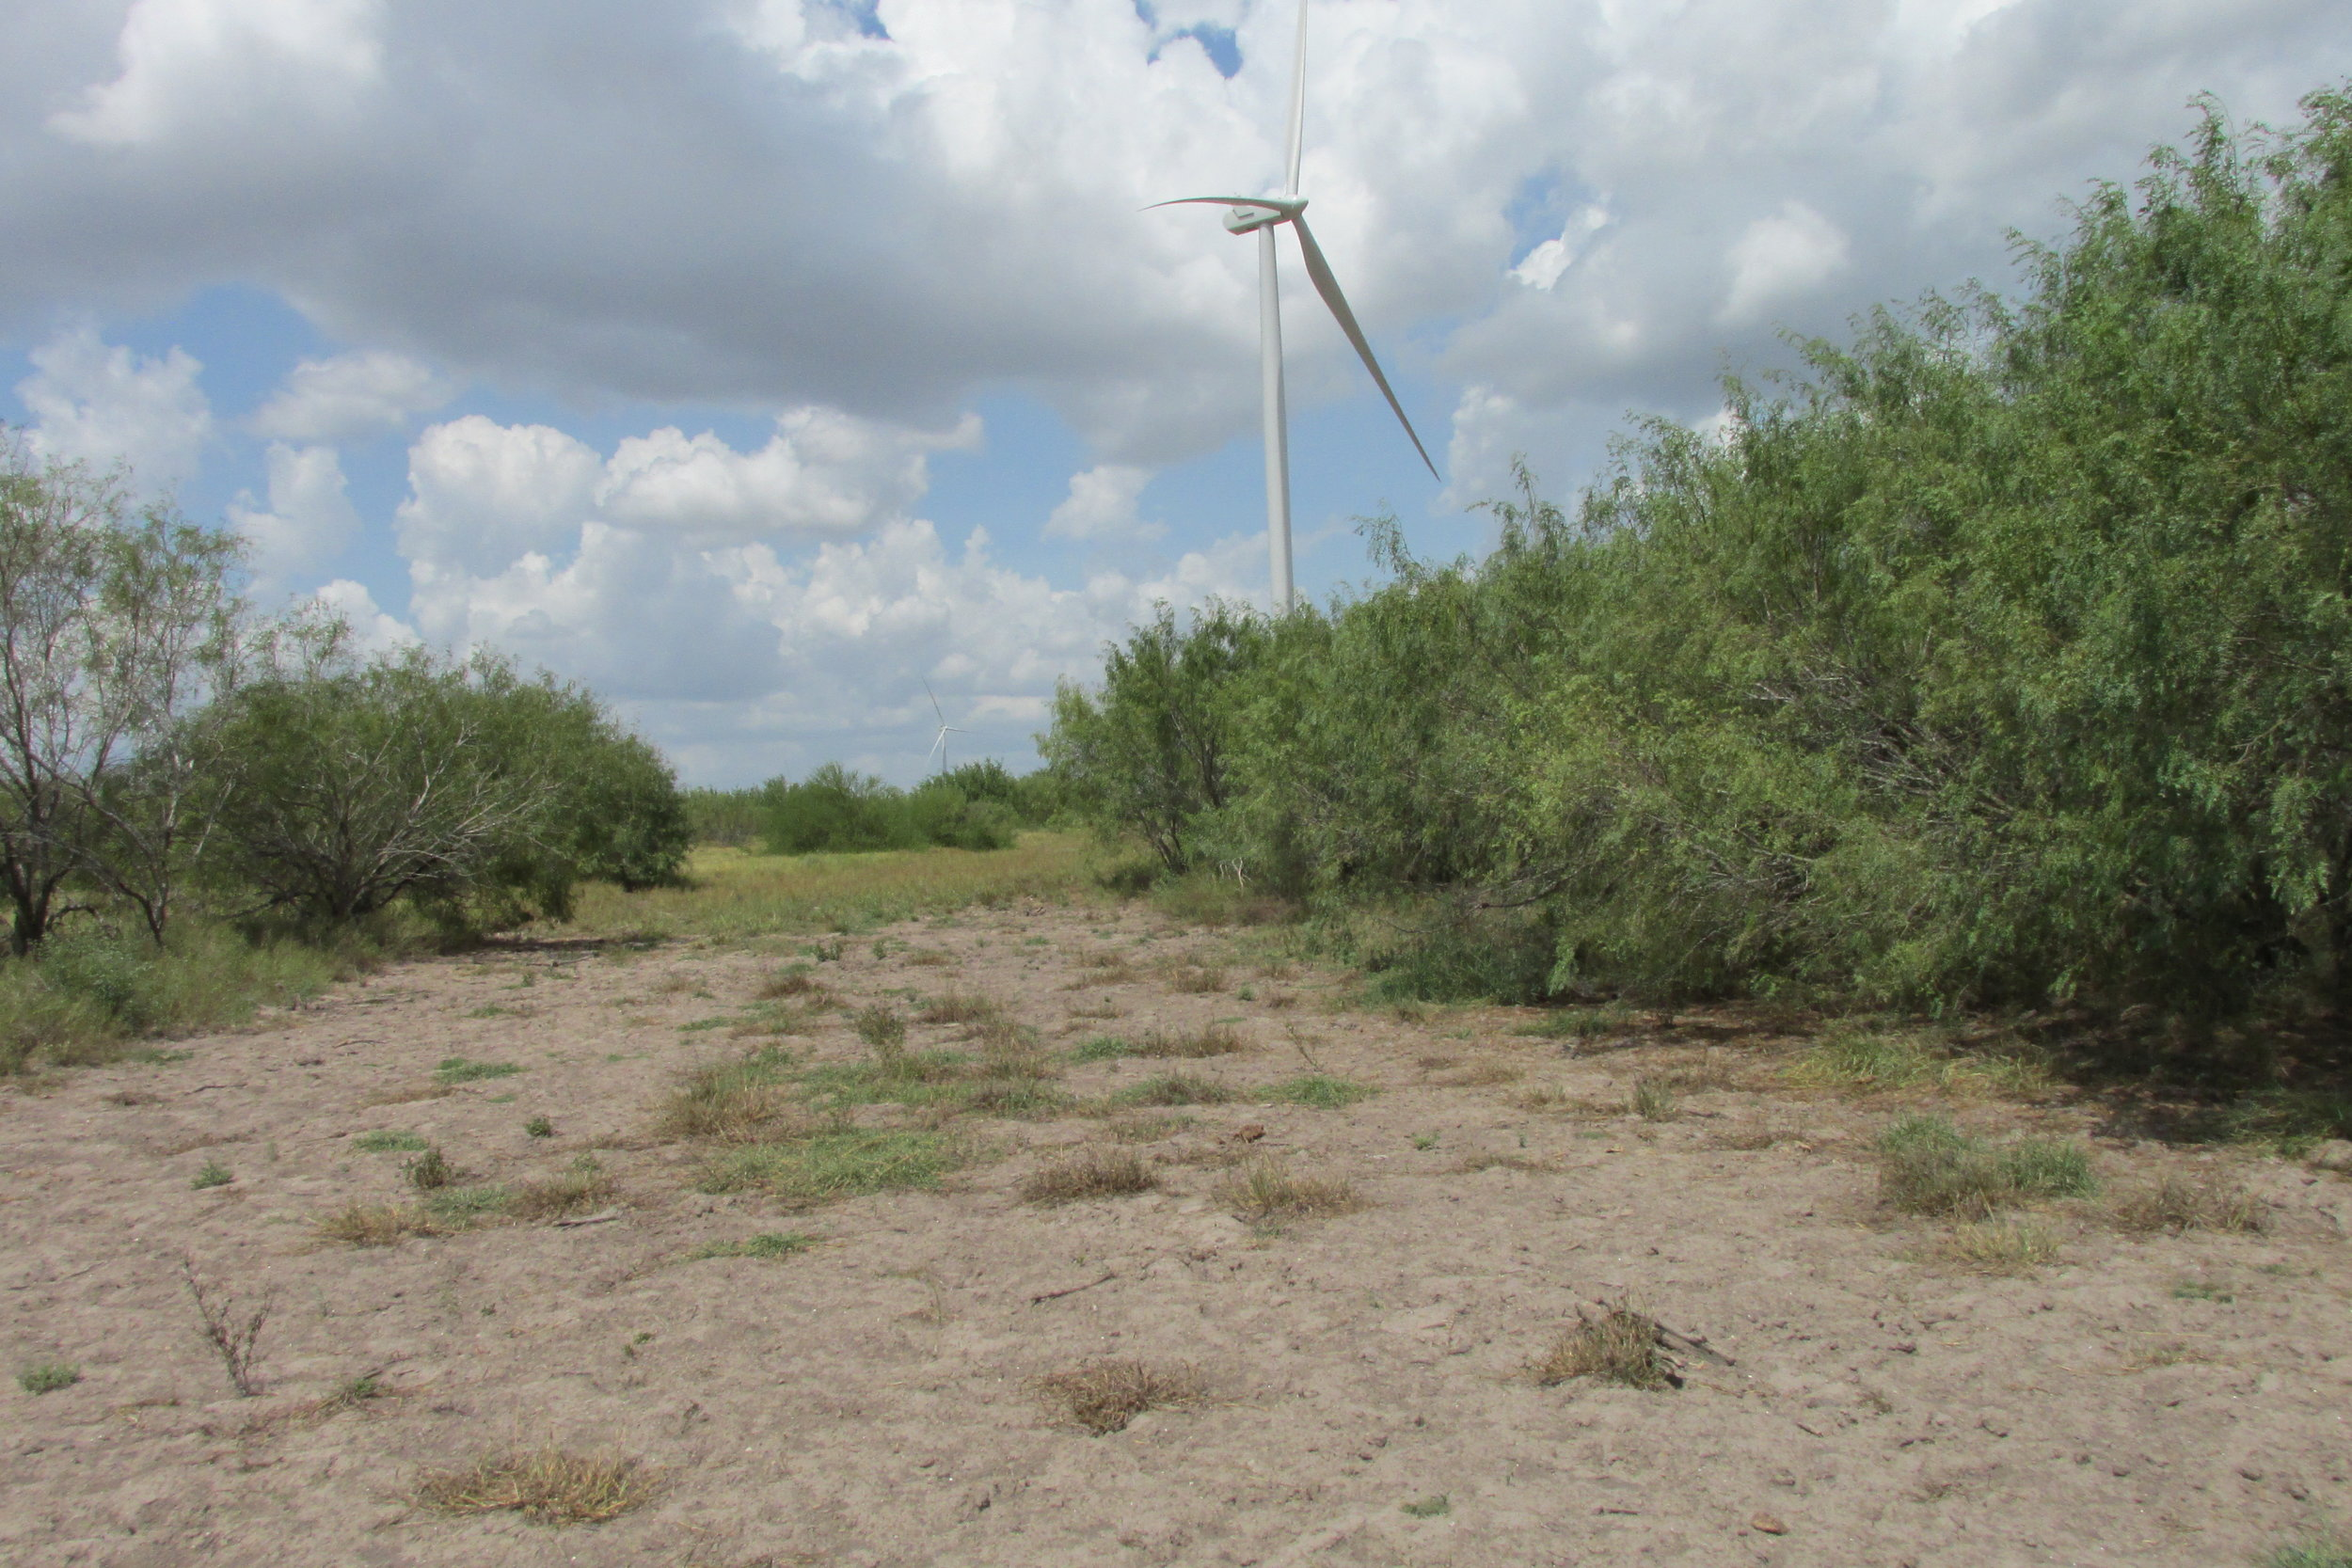 Los Vientos III, IV, and V Wind Projects - Wetland Delineation